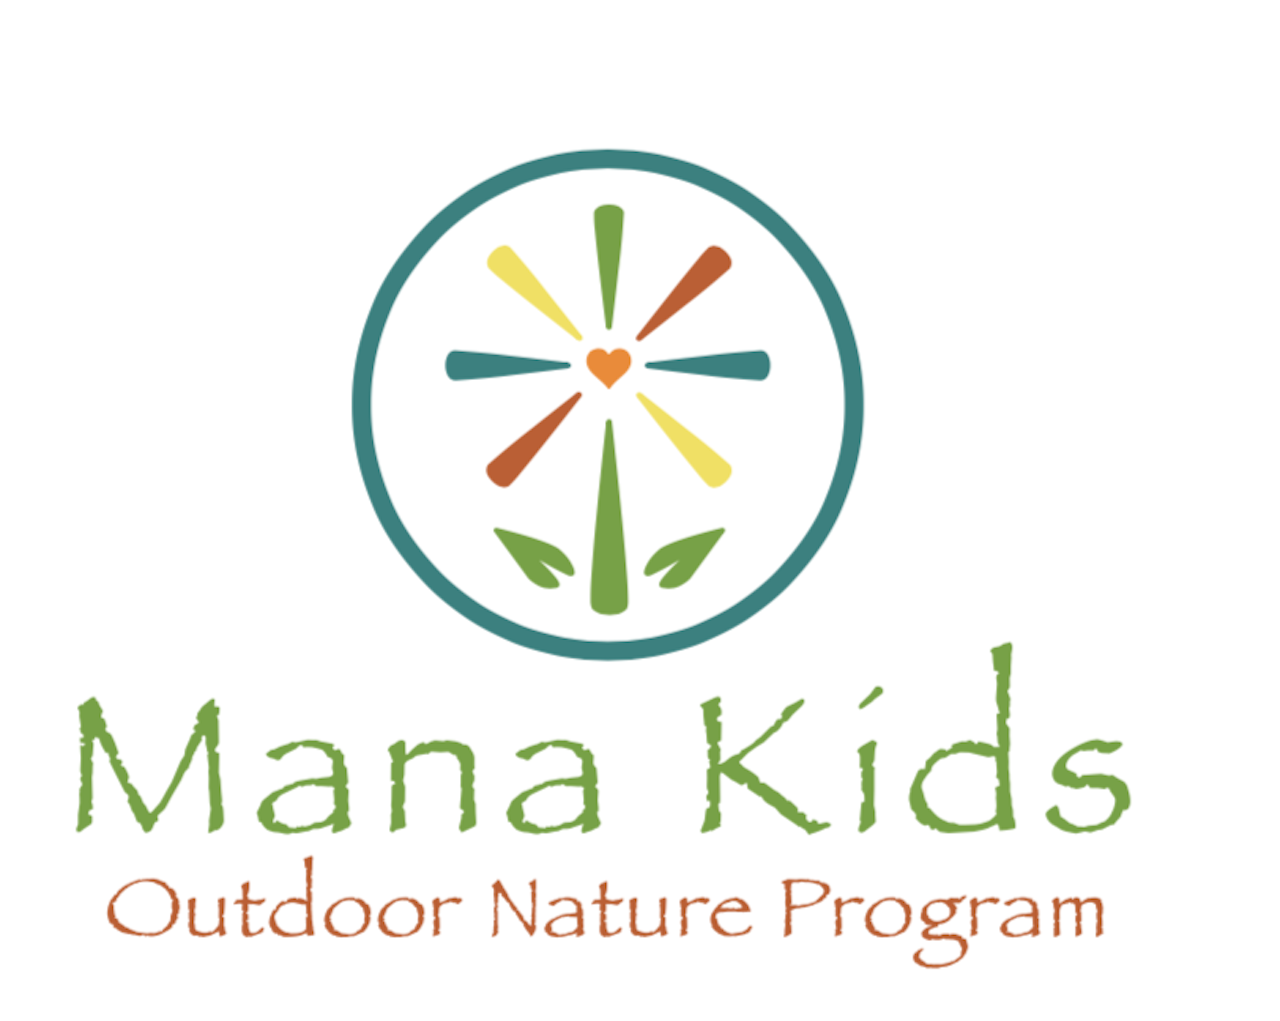 Mana Kids LLC / Outdoor Nature Program